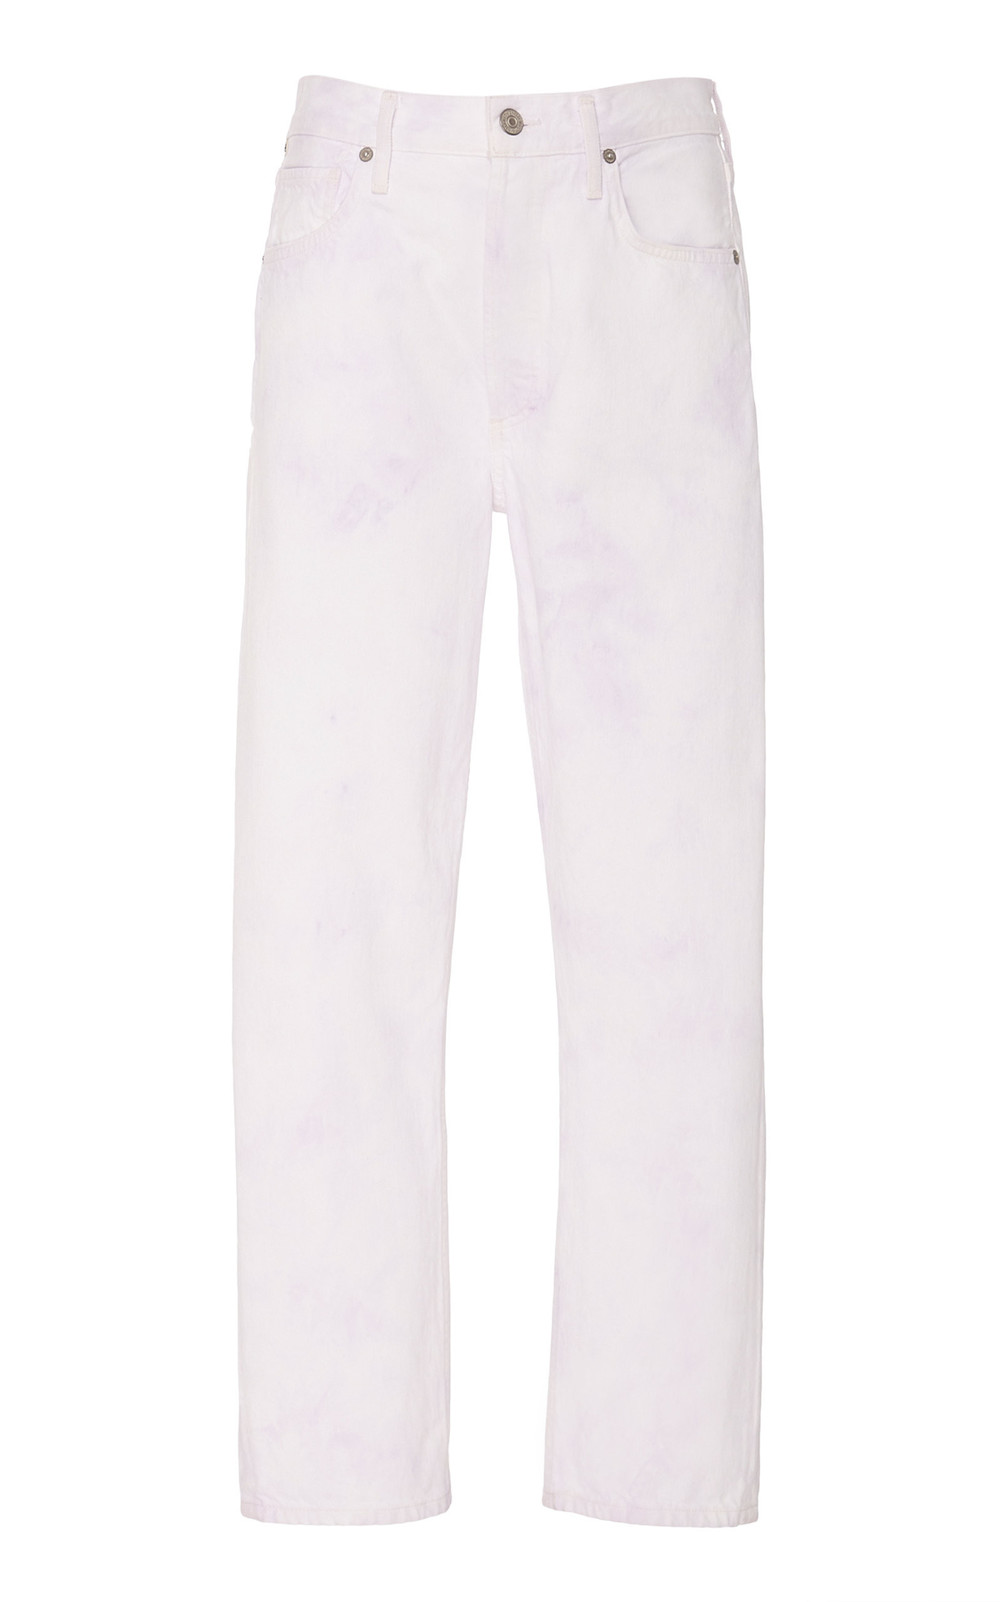 Citizens of Humanity Charlotte High-Rise Straight-Leg Jeans in multi